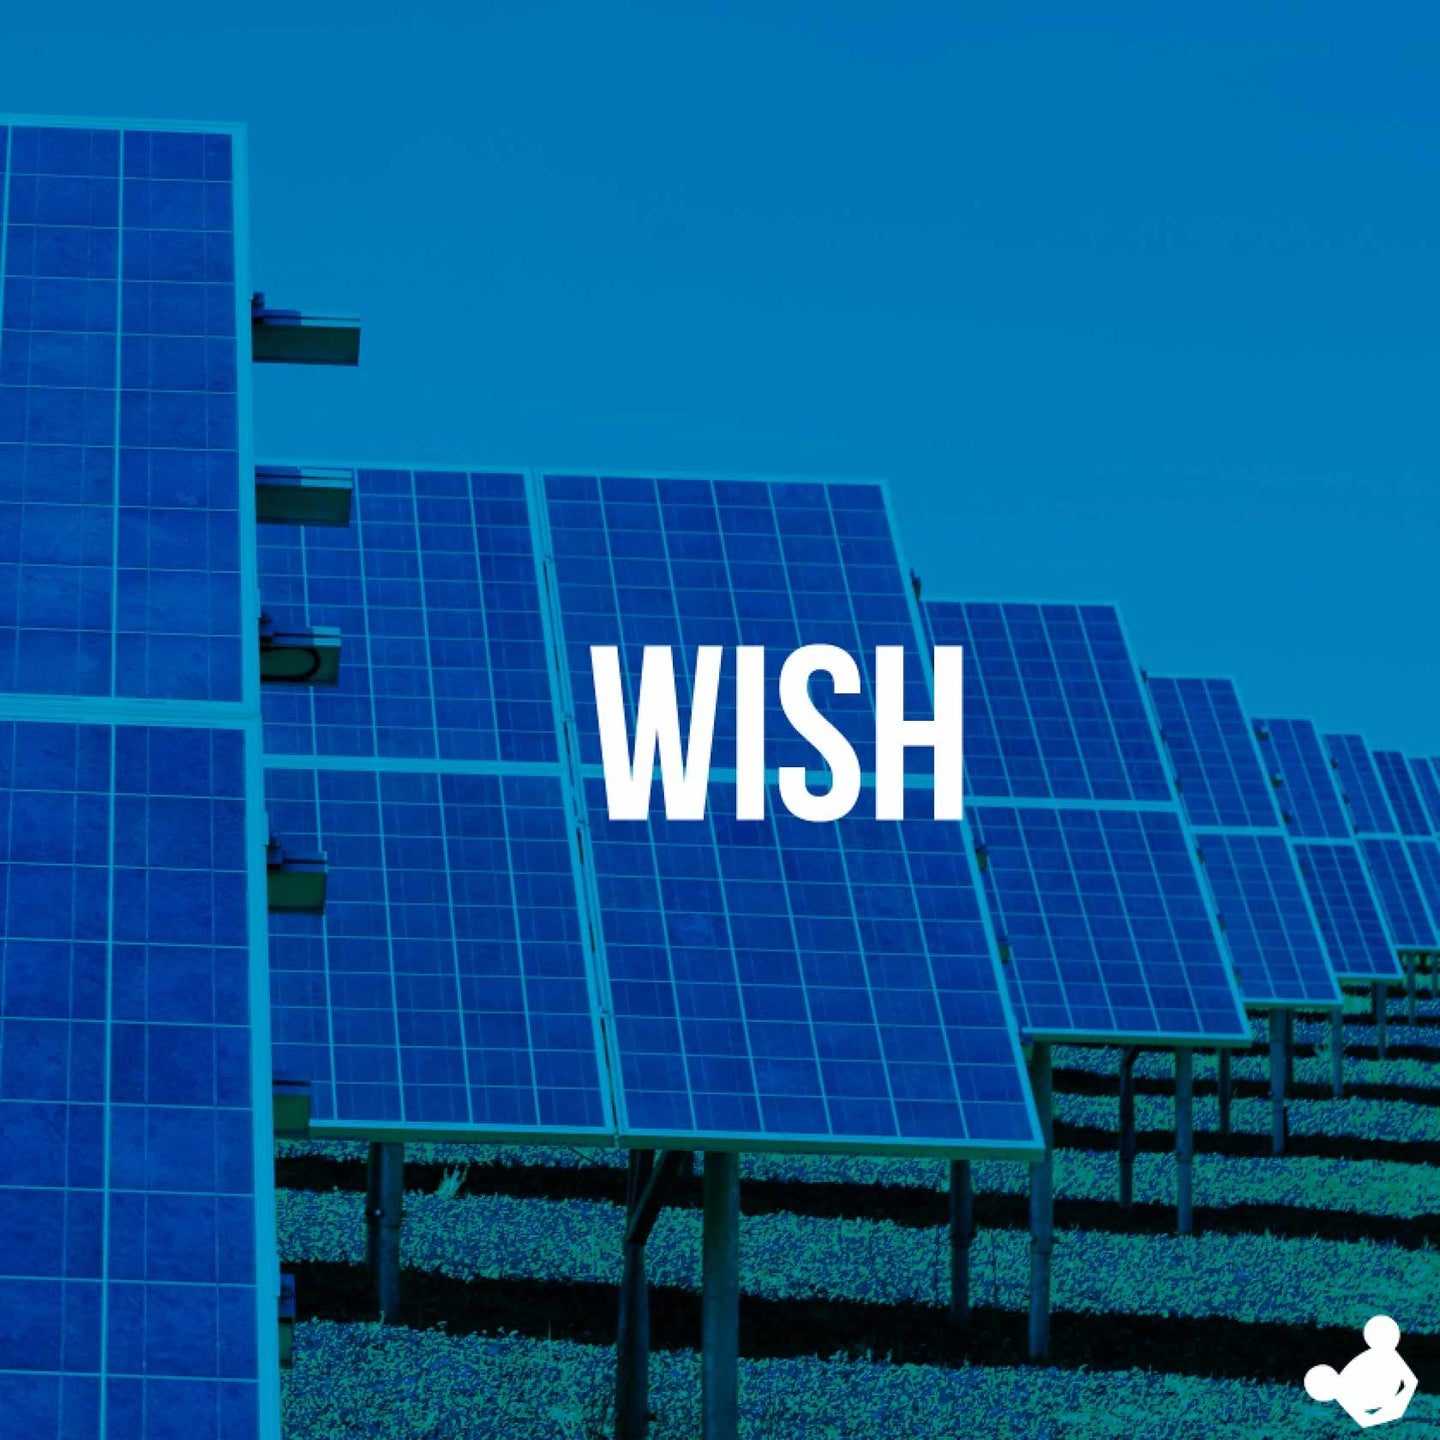 Renewable energy is a need and a WISH.